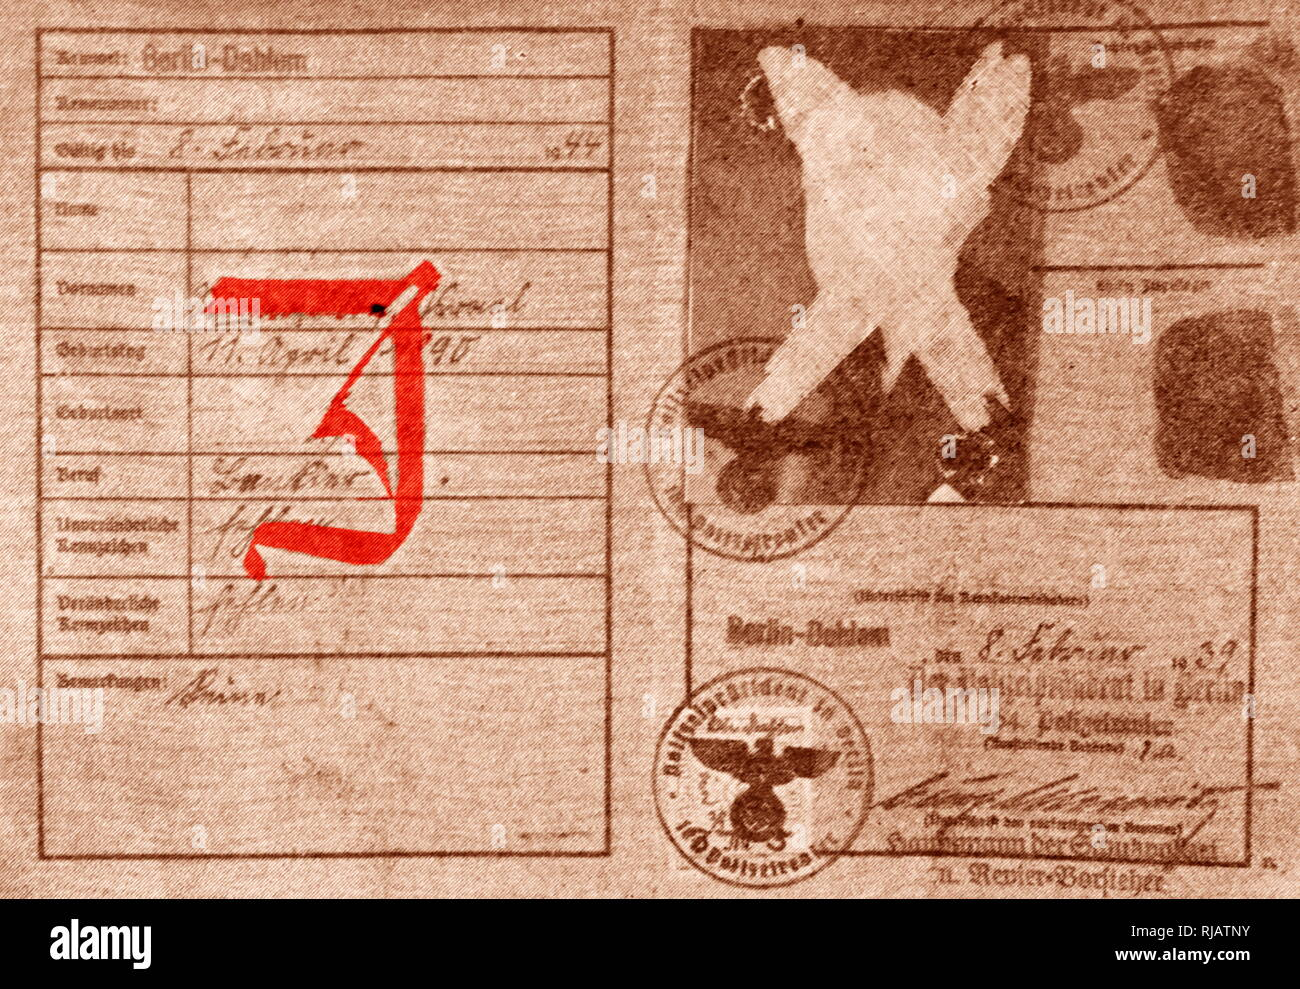 A special identity card with a red 'J' stamped on it further advanced the exclusion of the Jews in 1939.  All Jewish people had to carry an identity card after the enactment of the Nuremberg Laws (Nürnberger Gesetze); anti-Semitic laws in Nazi Germany, introduced on 15 September 1935. - Stock Image